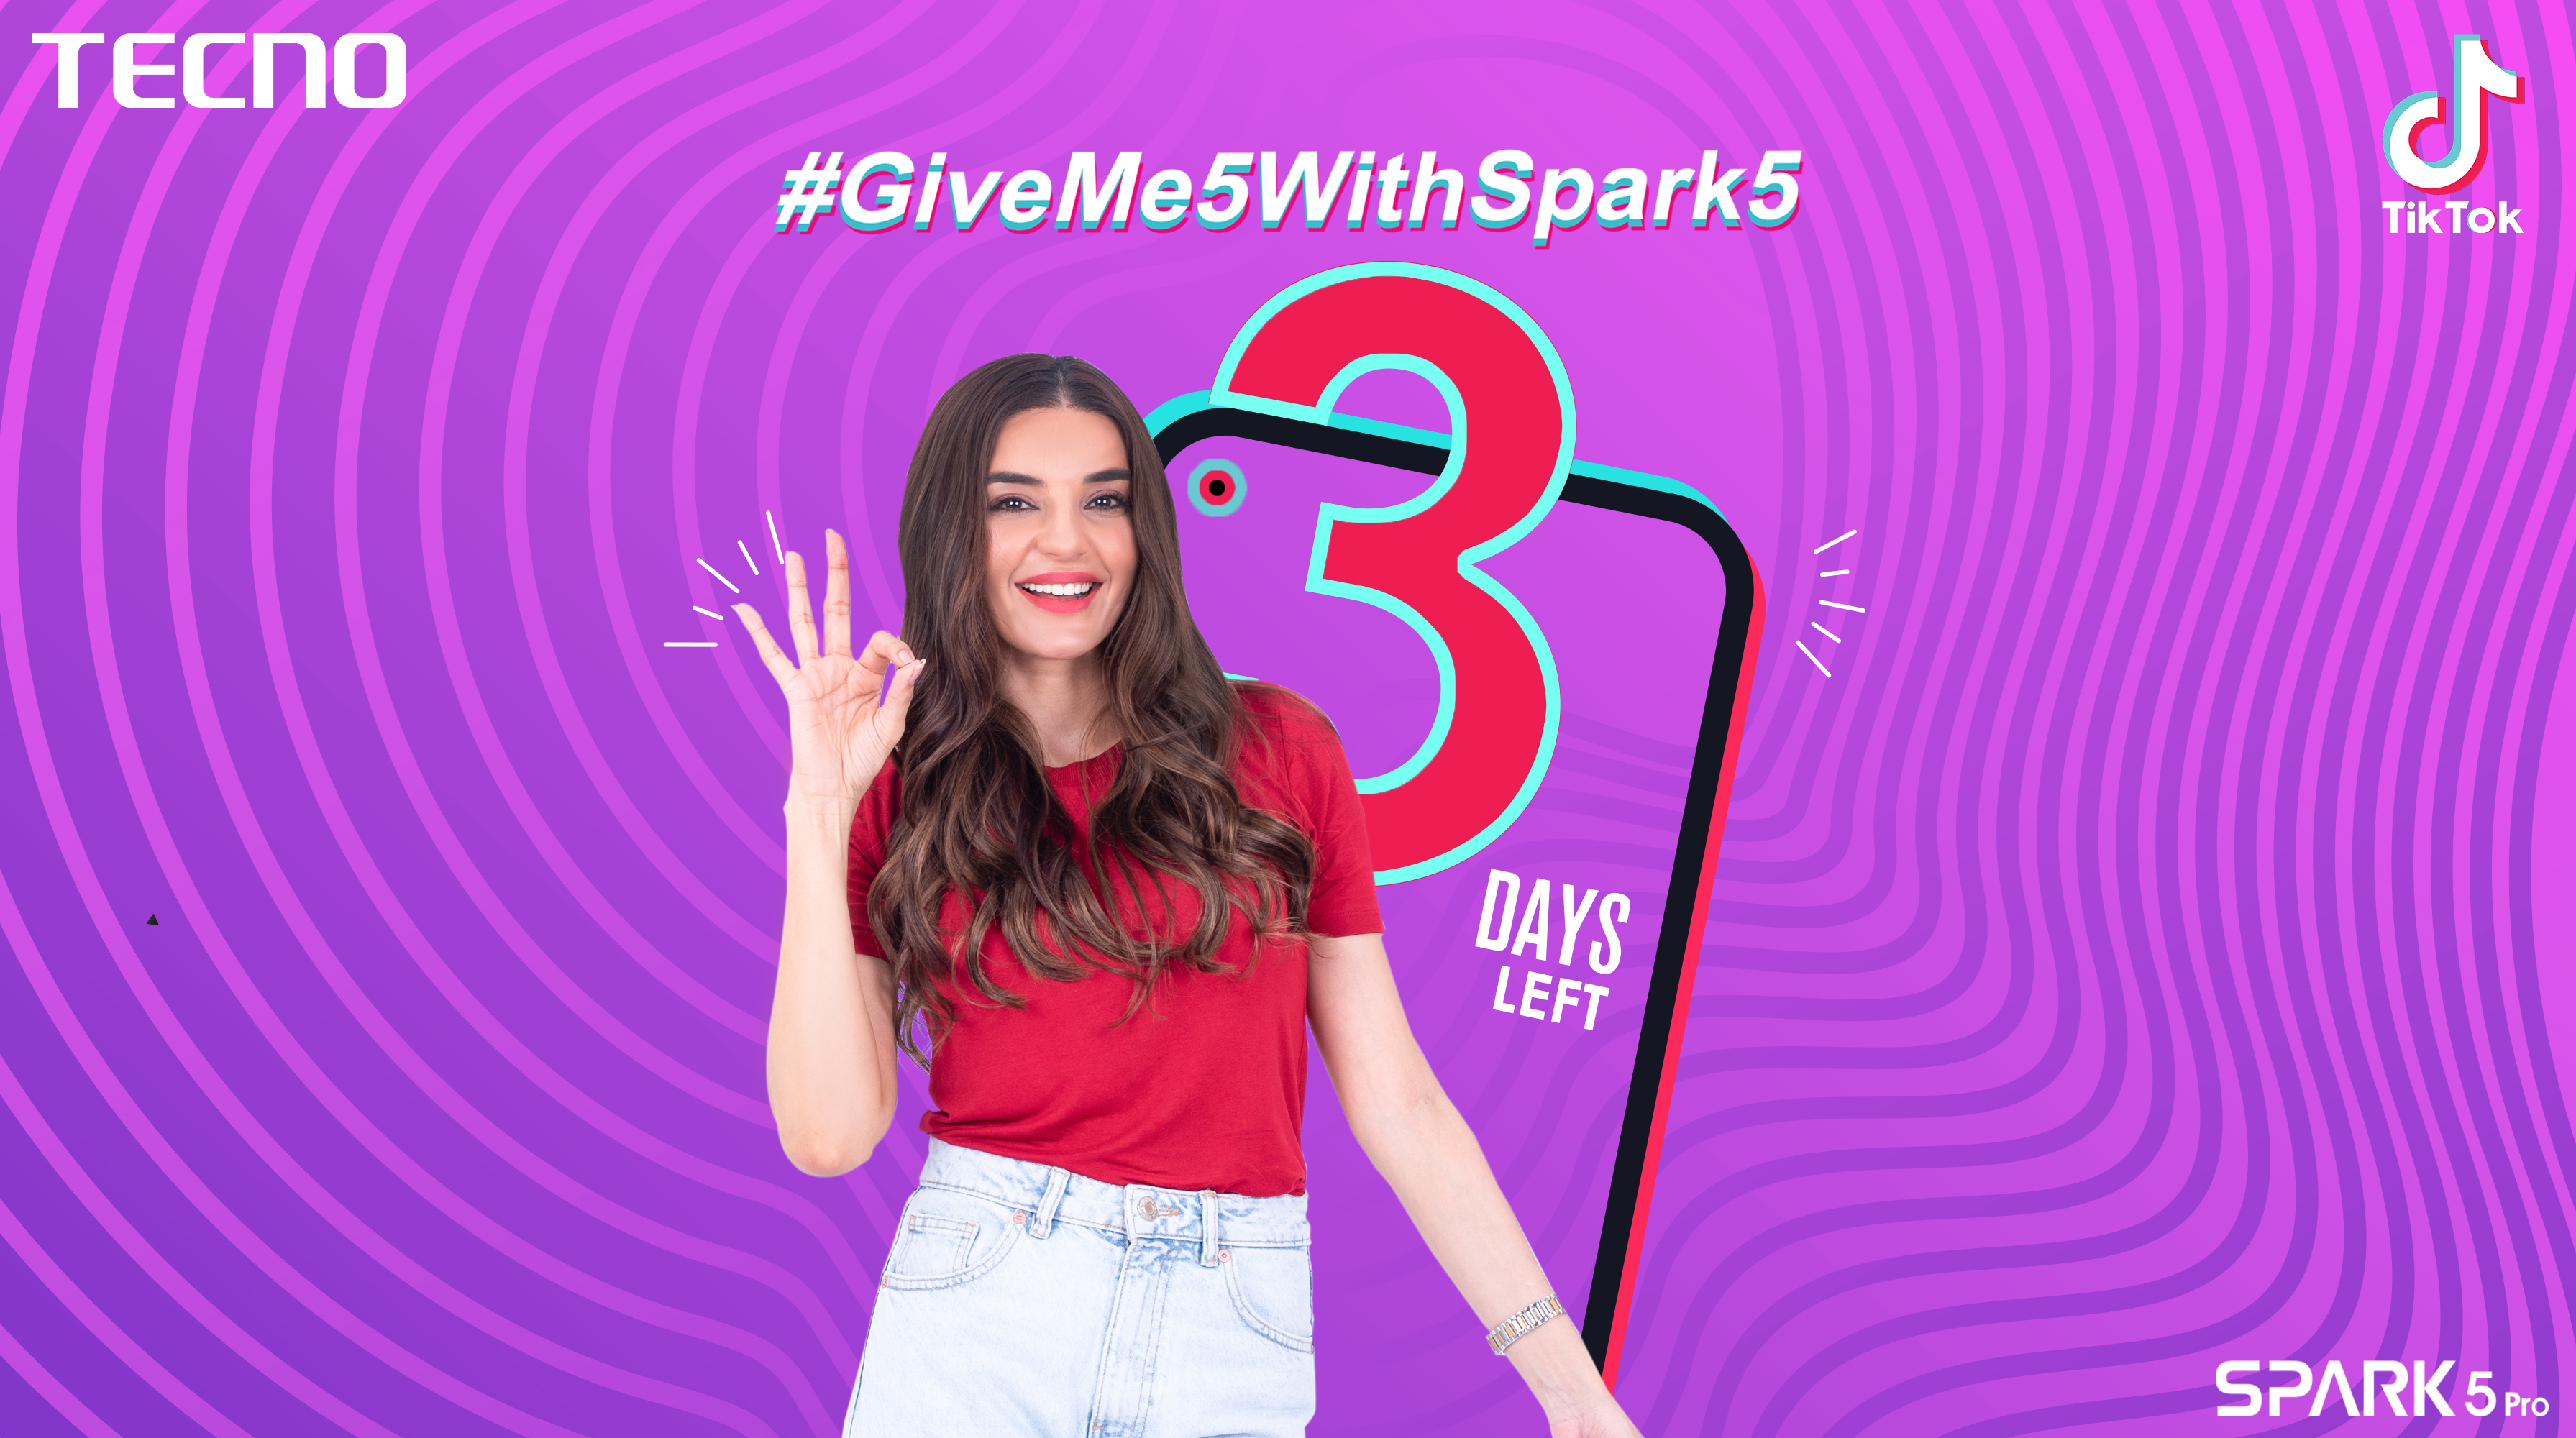 tecno GiveMe5withSpark5